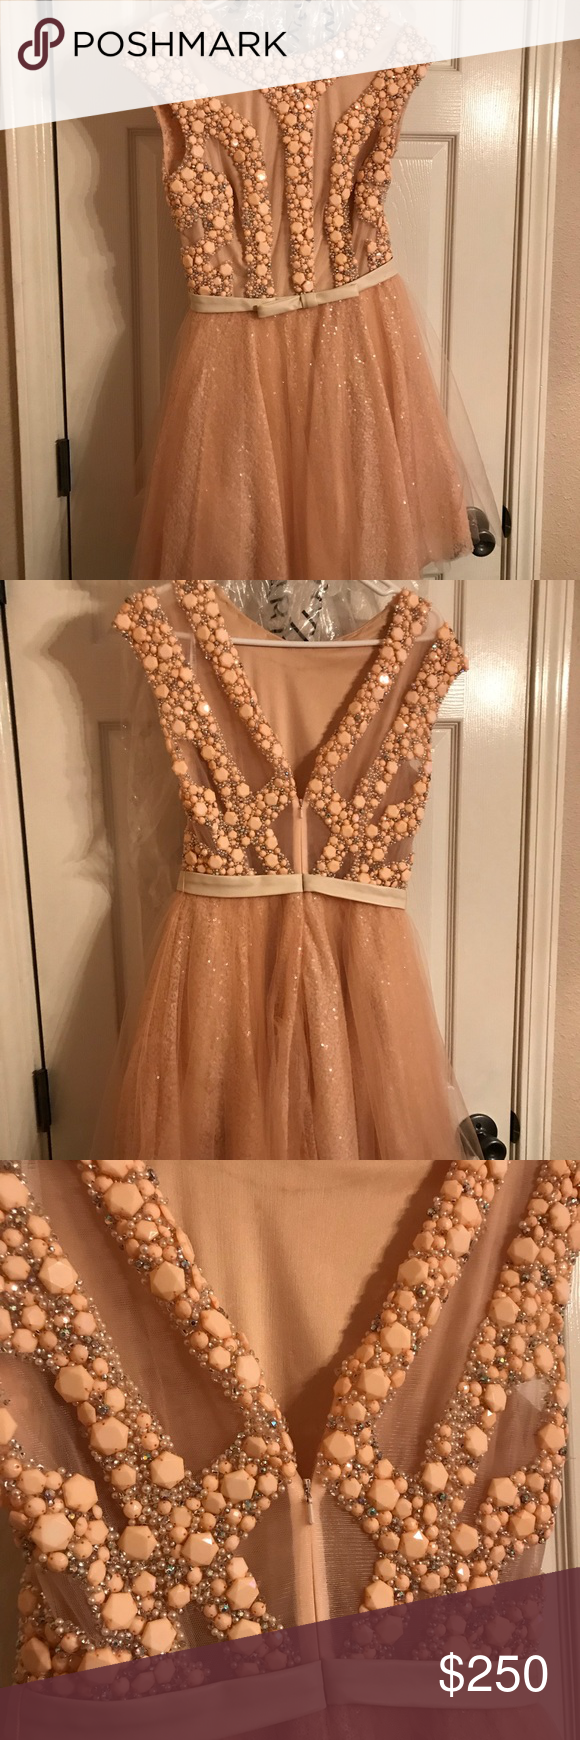 Sherri hill prom dress sherri hill prom dresses peach prom